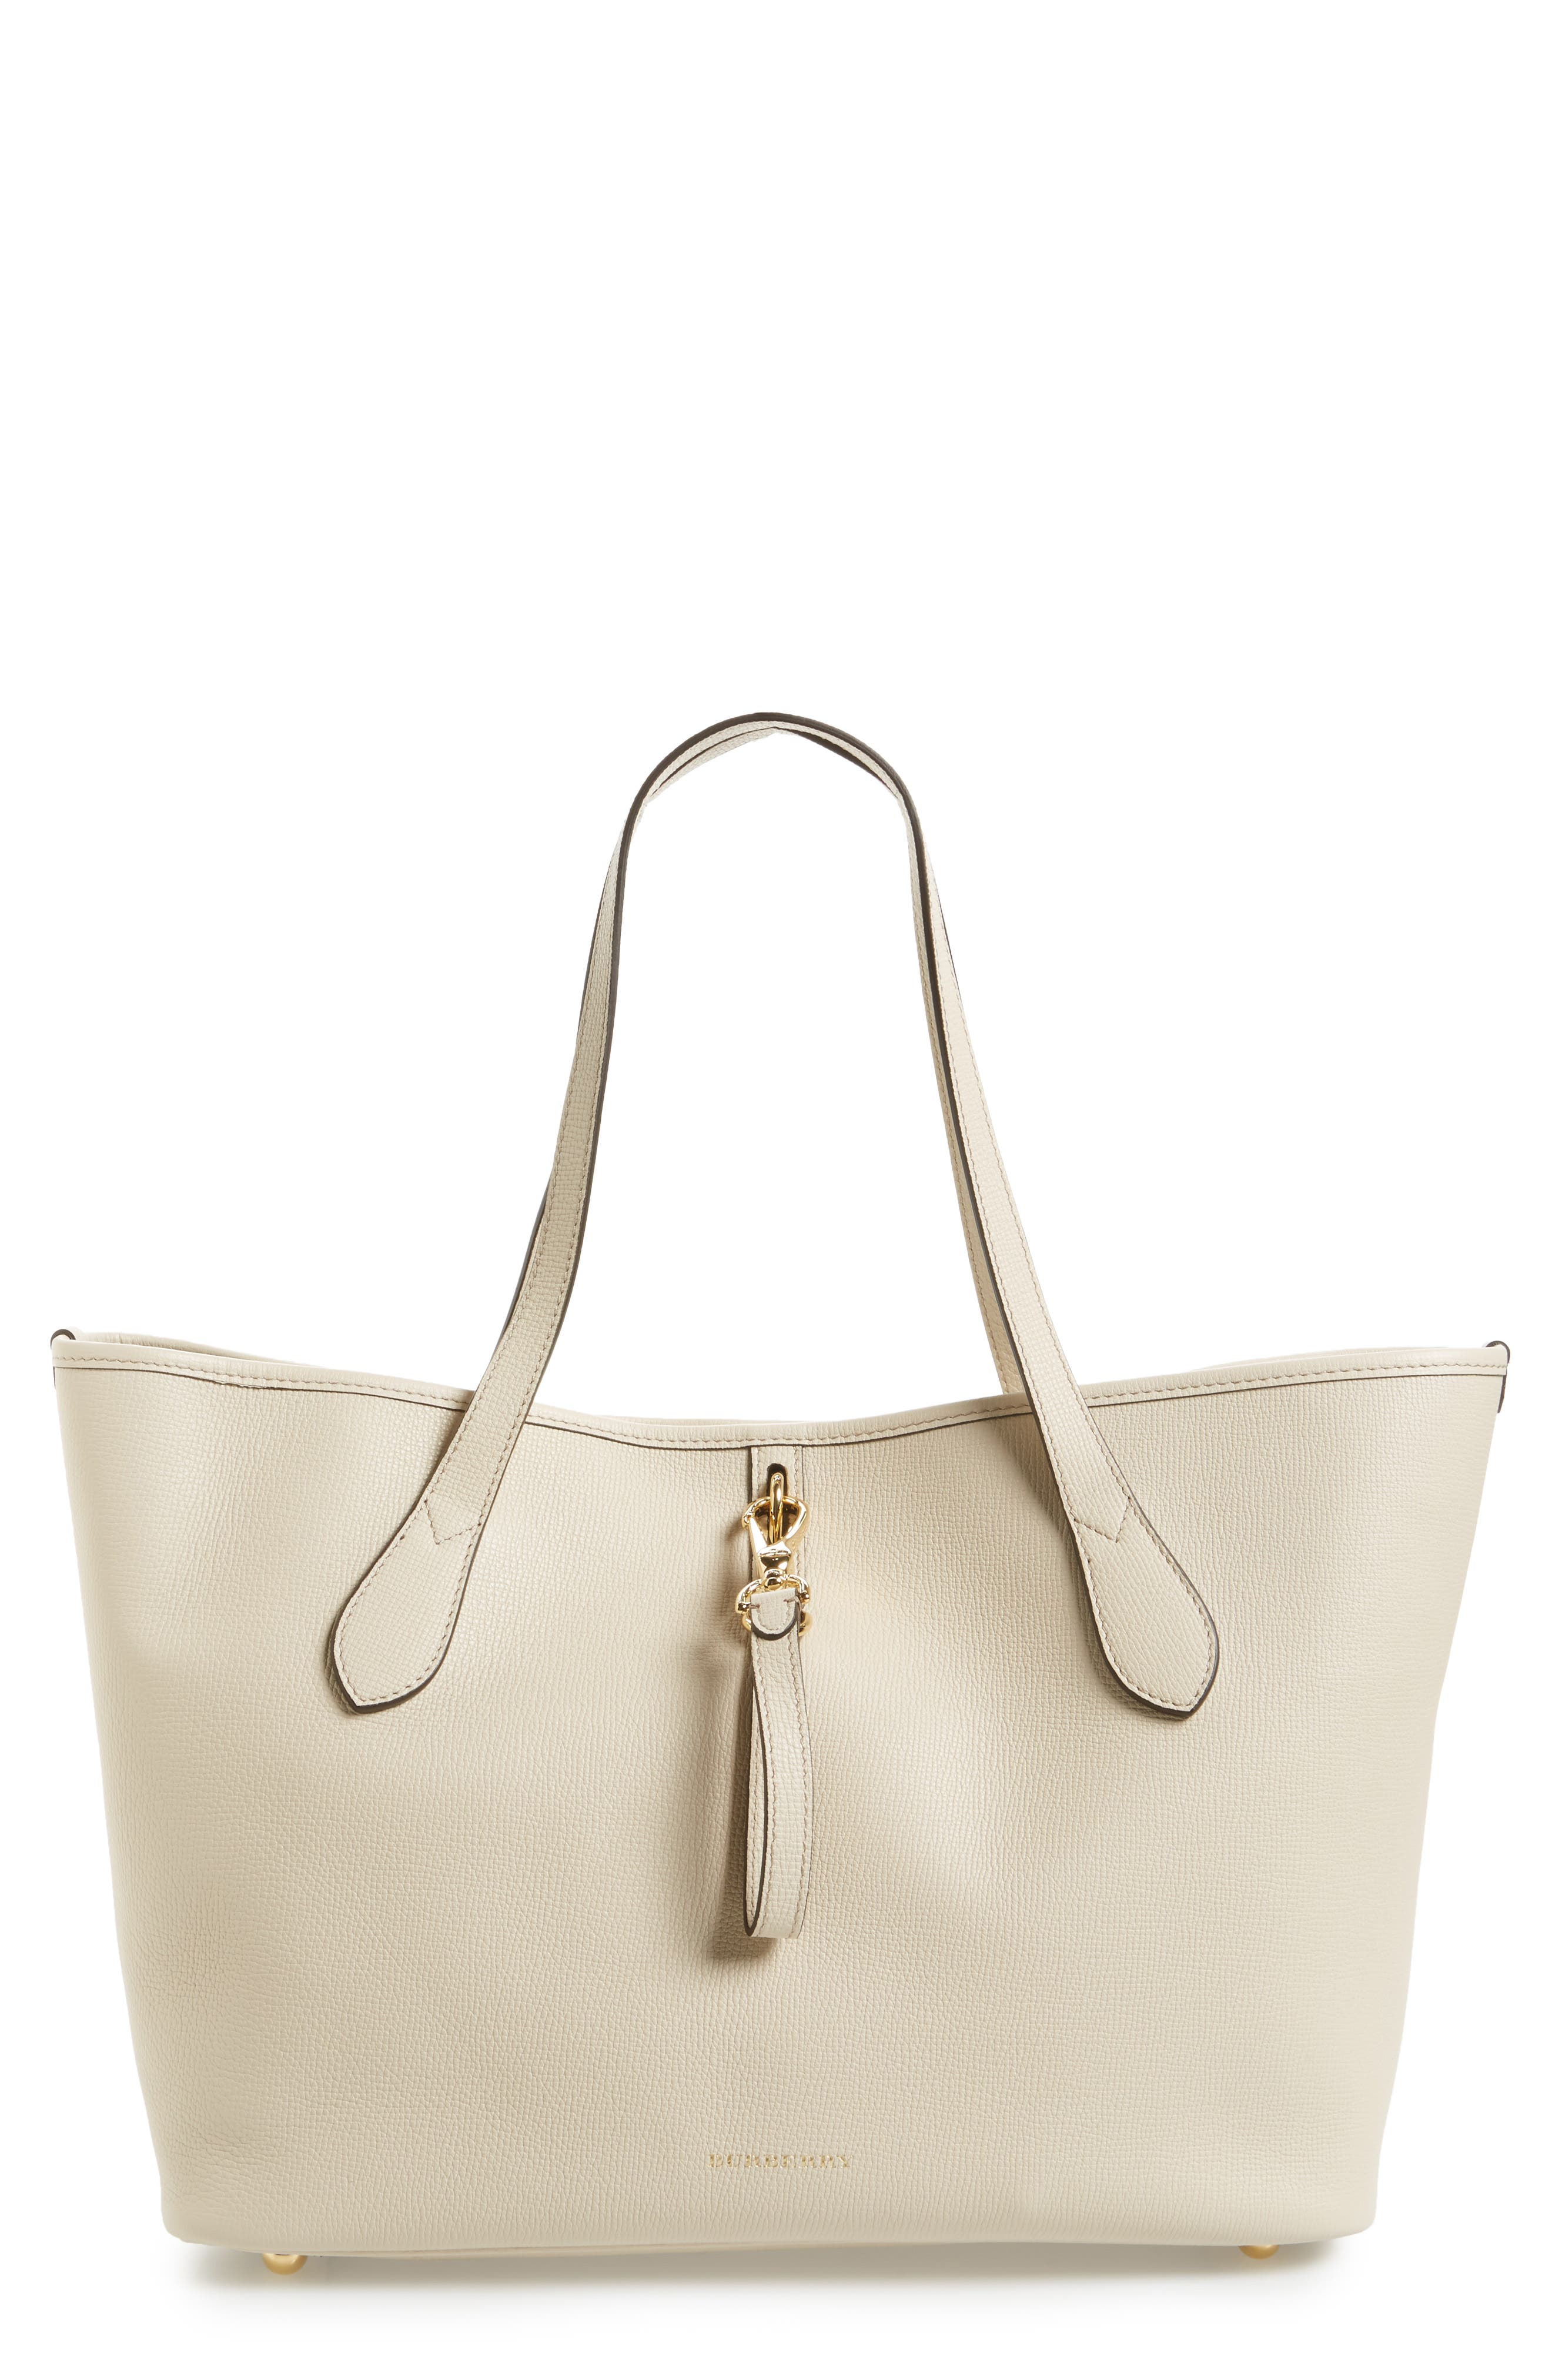 Main Image - Burberry Medium Honeybrook Leather Tote